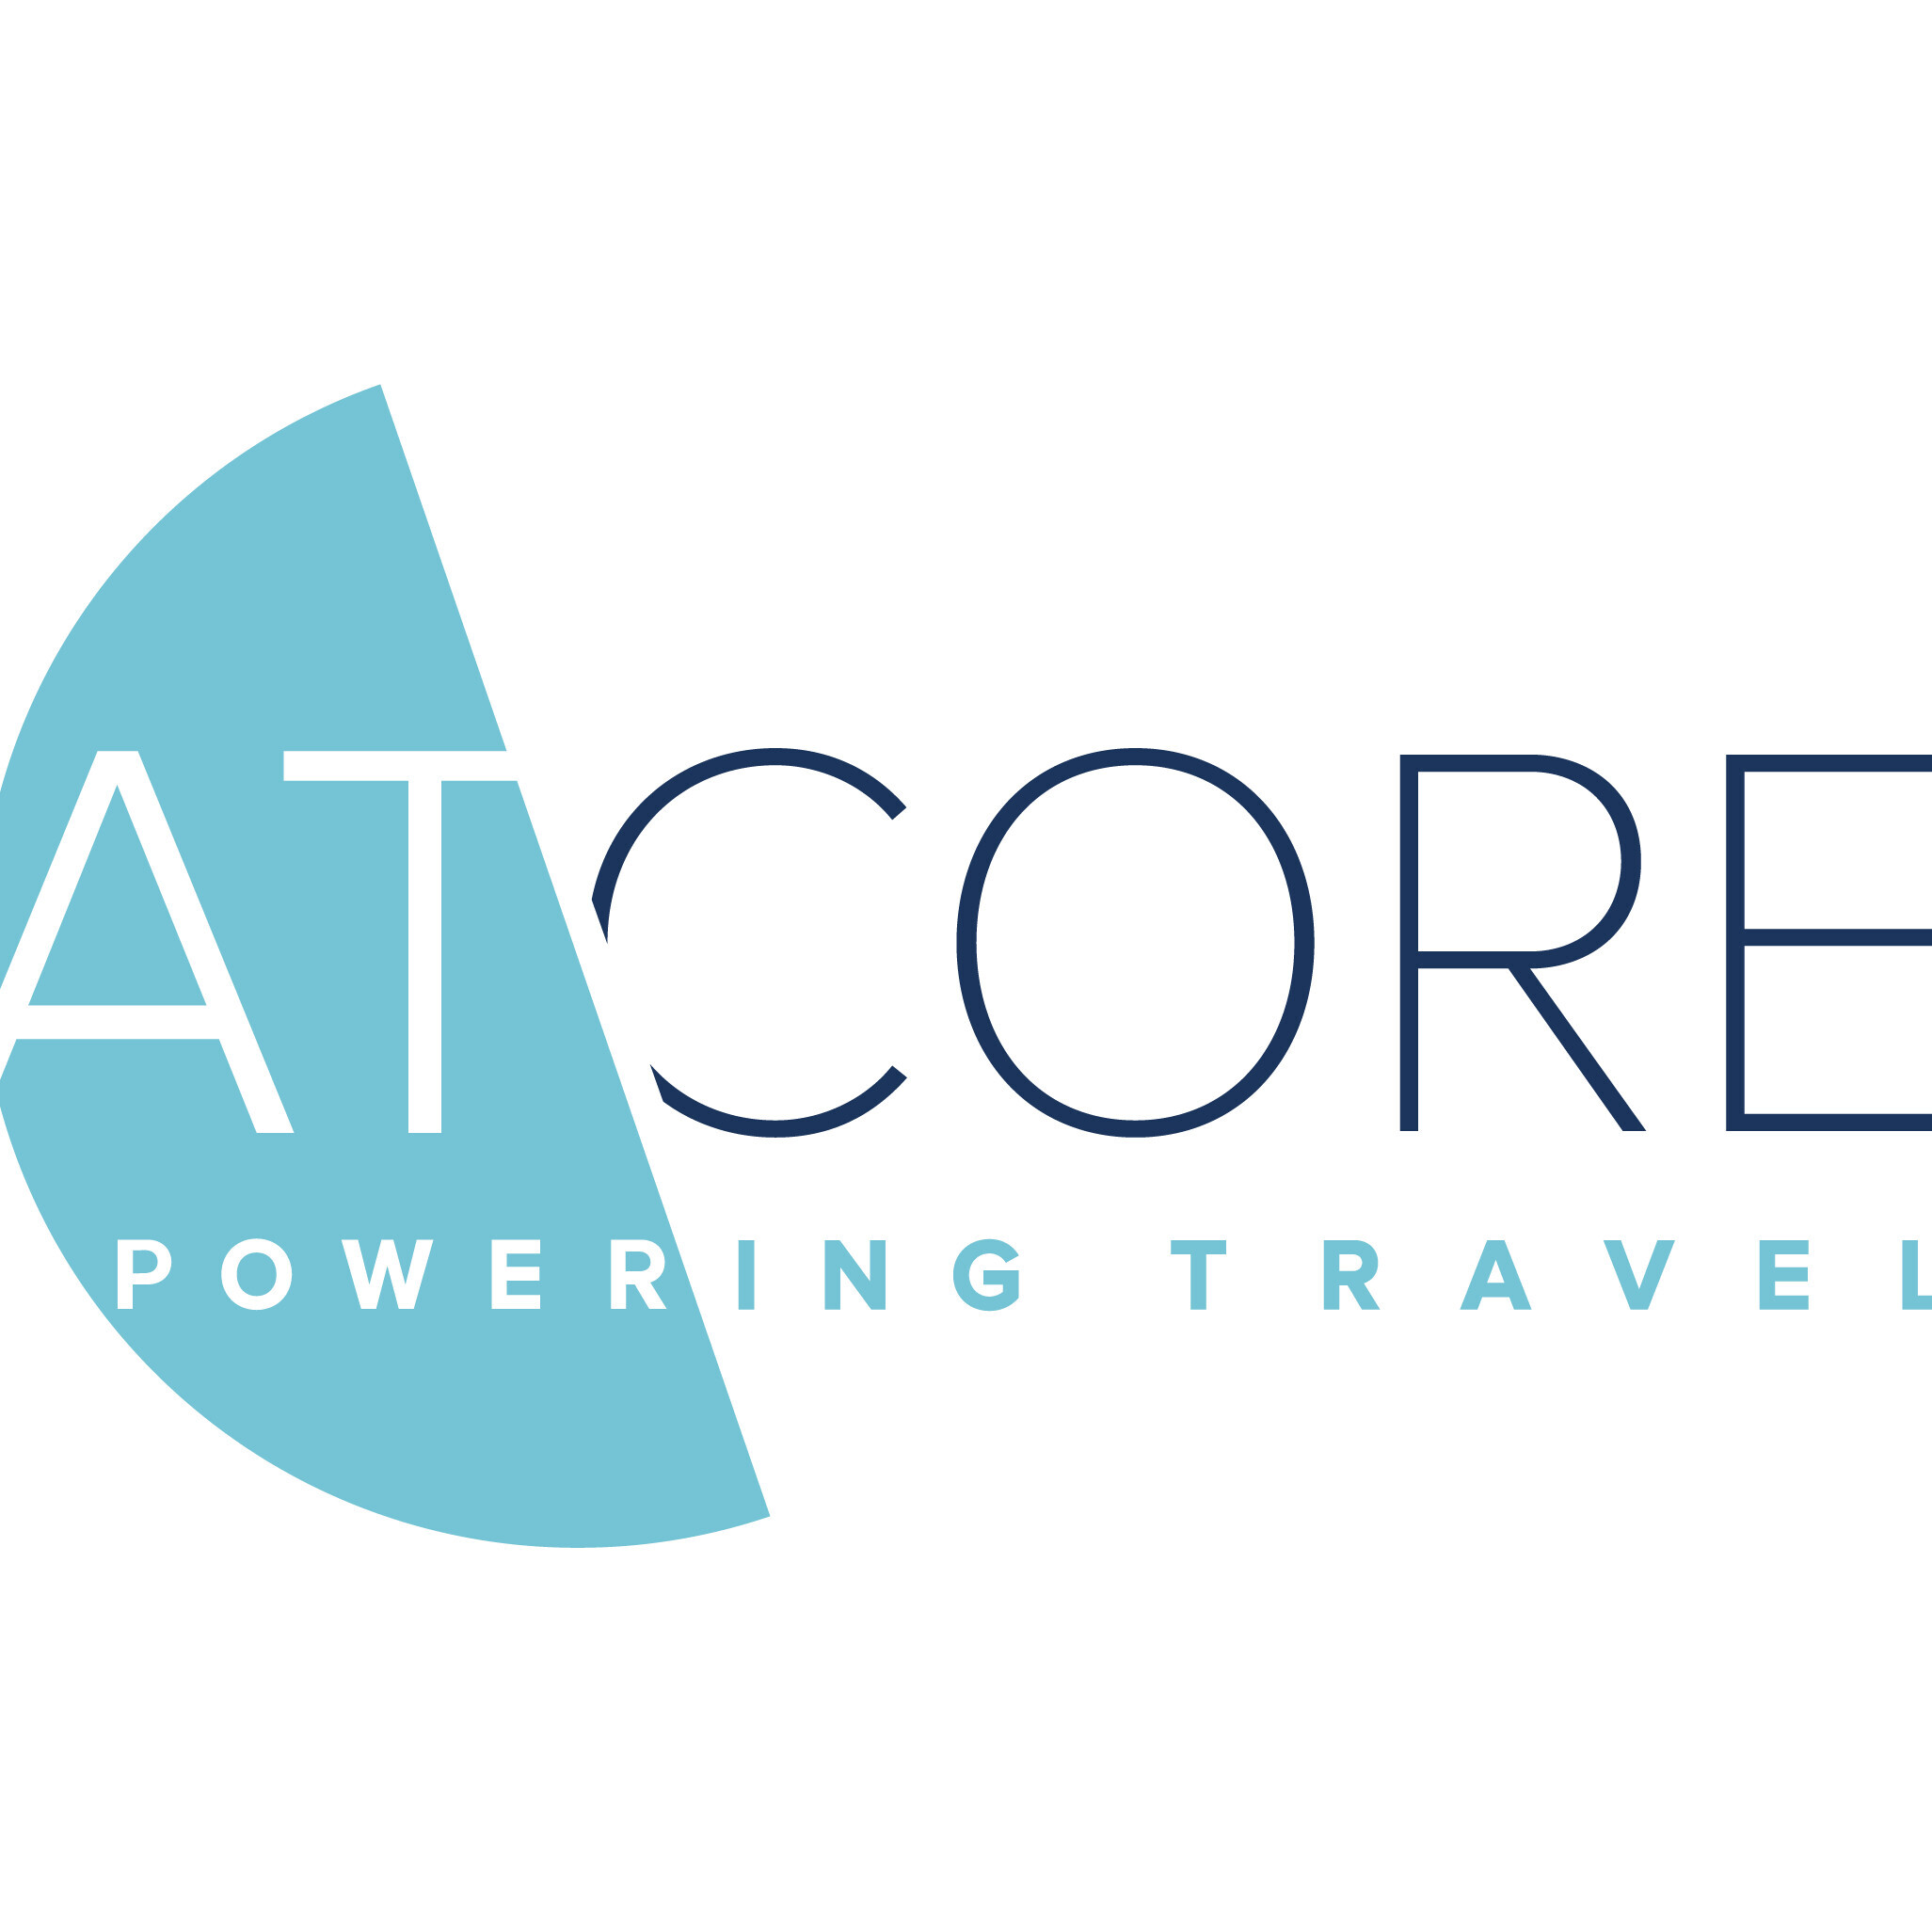 The ATCORE Group